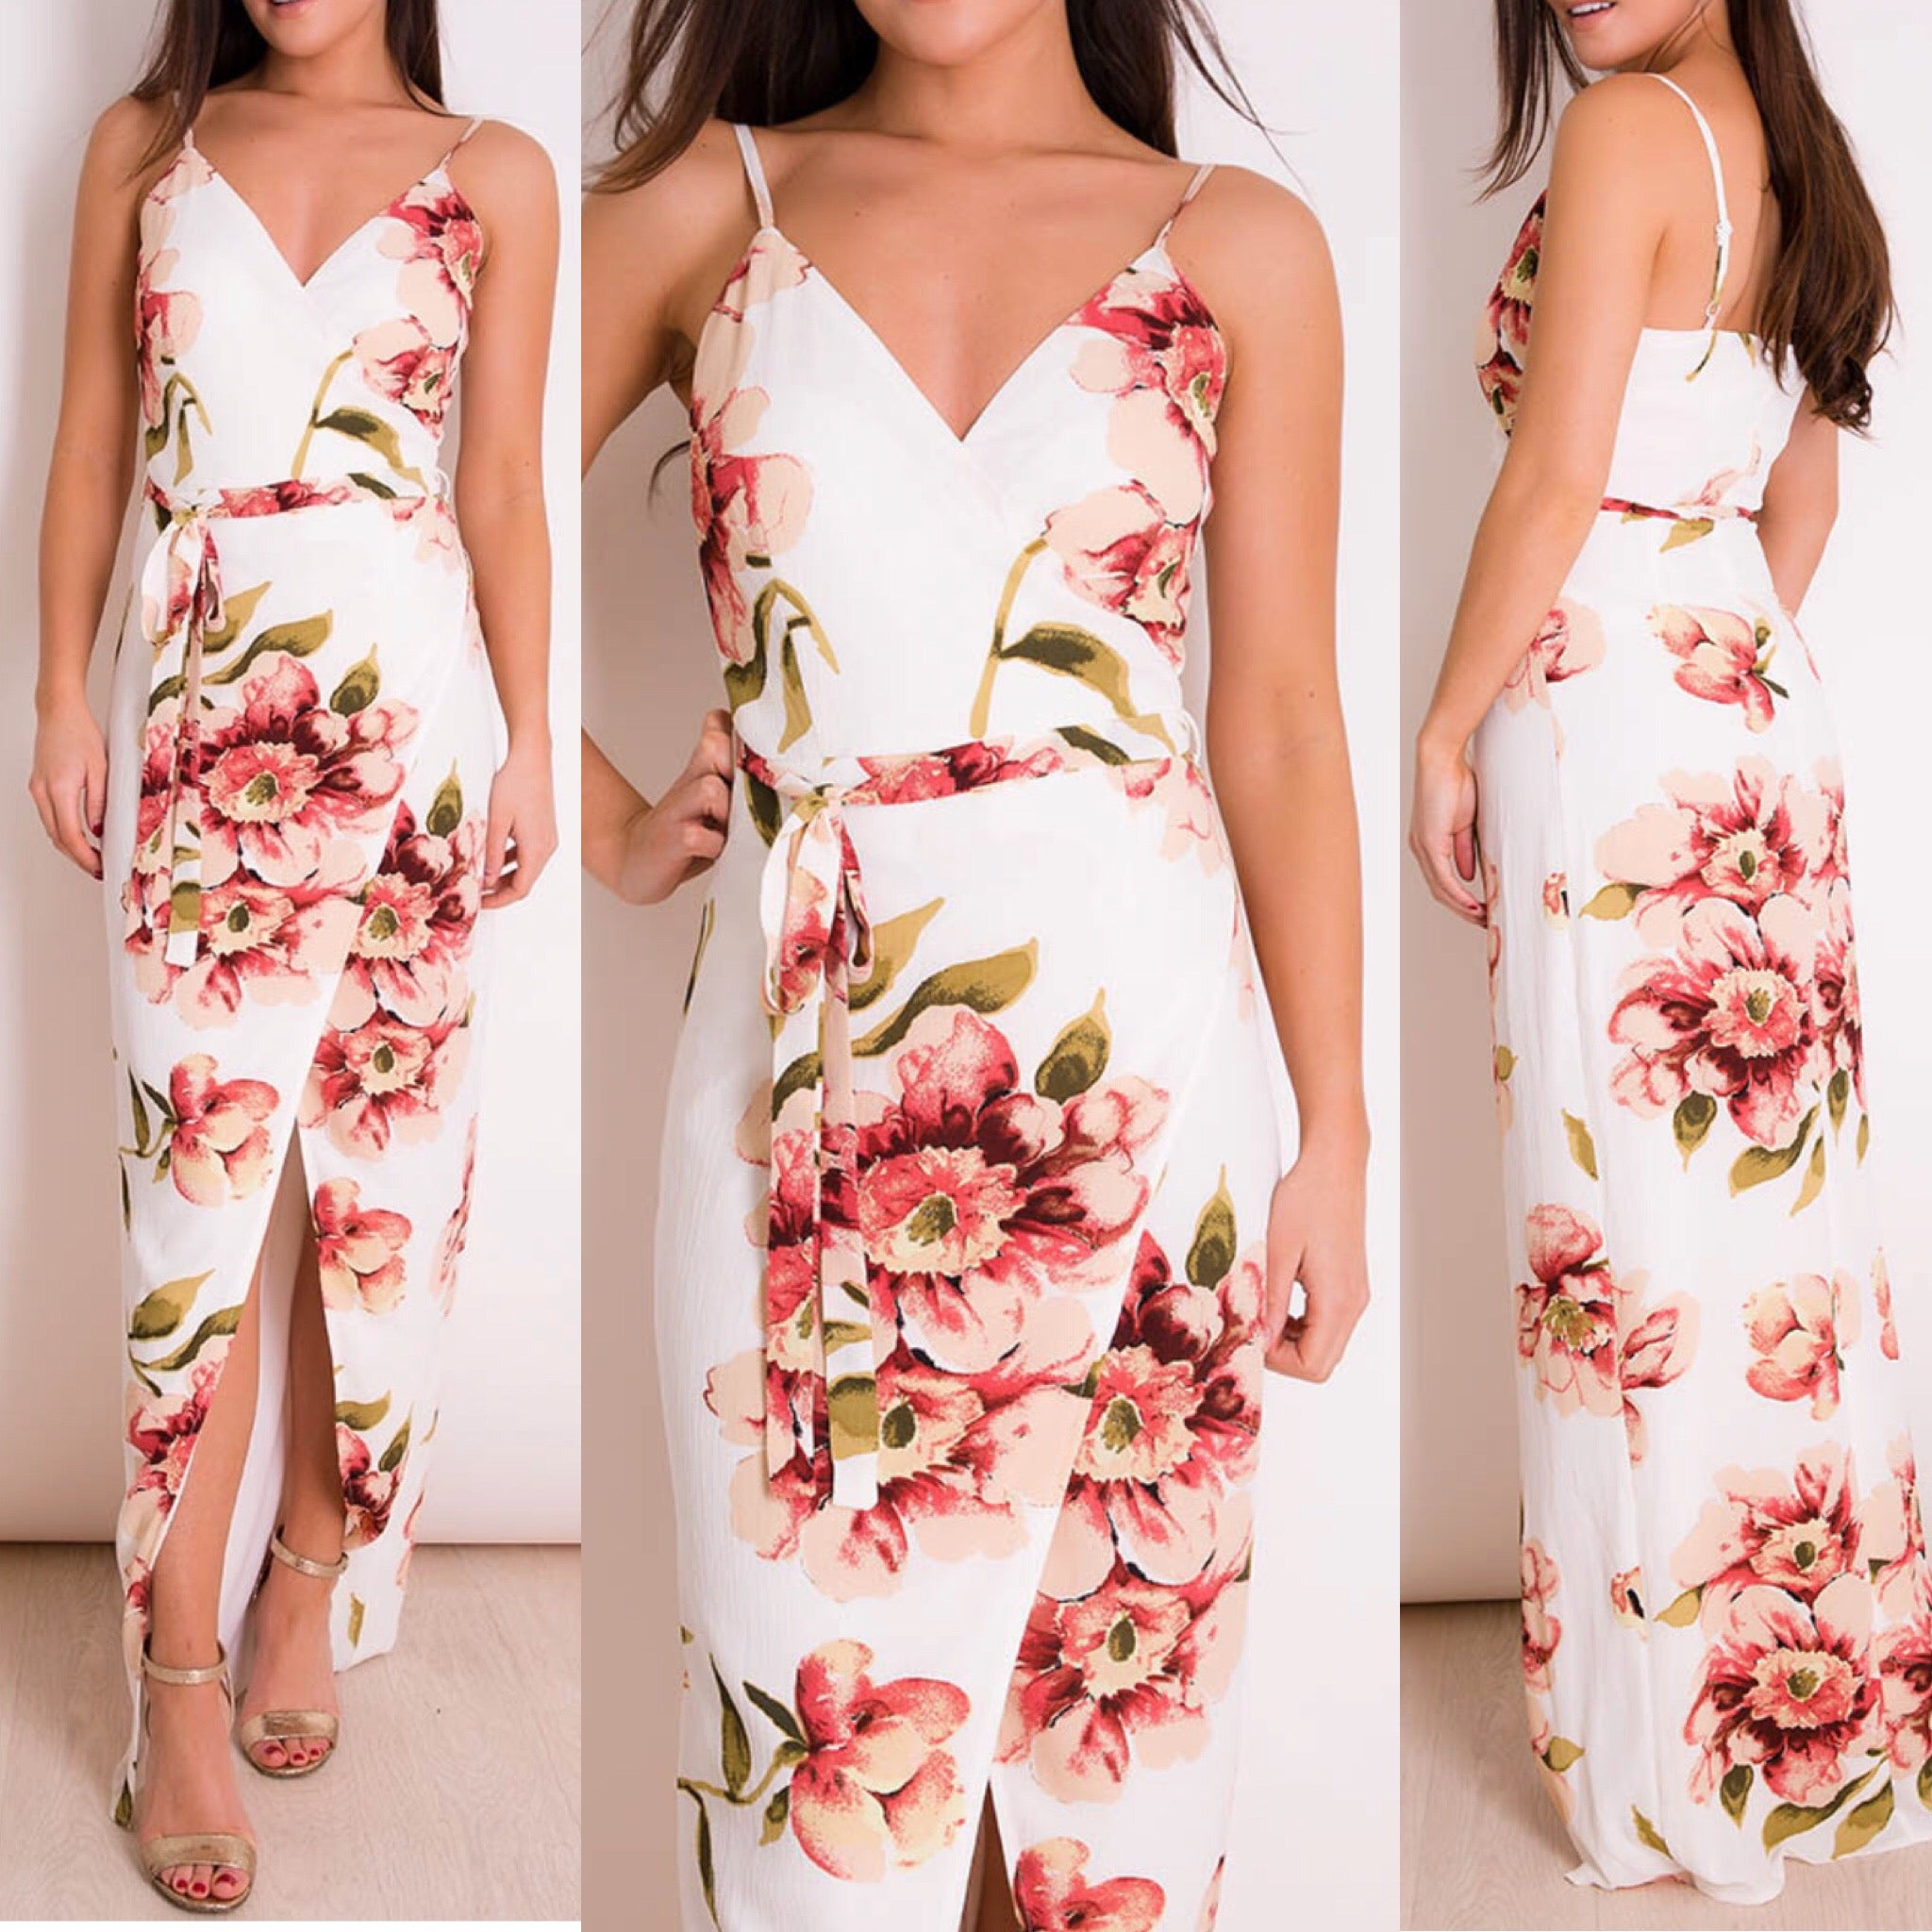 25Ten & Co Boutique Dresses 'Beau' Floral Print Wrap Maxi [product_tags] - 25Ten & Co Boutique